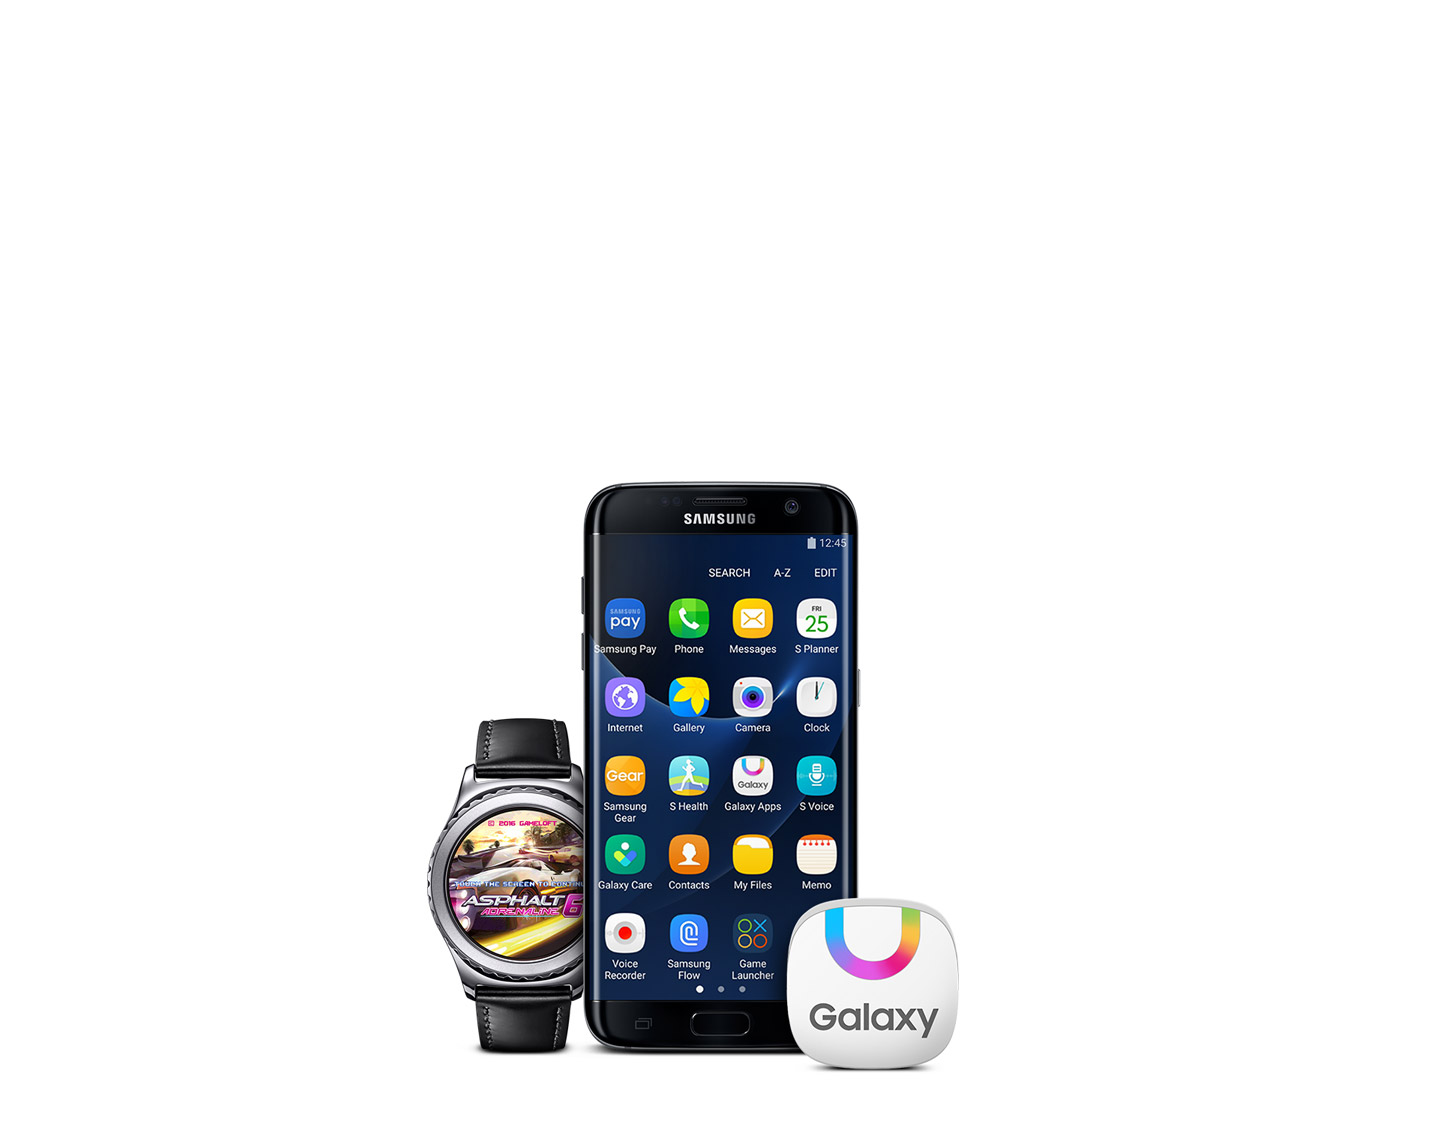 Galaxy App Store Icon On Home Screen Of Galaxy S7 Edge Which Is Synced To The